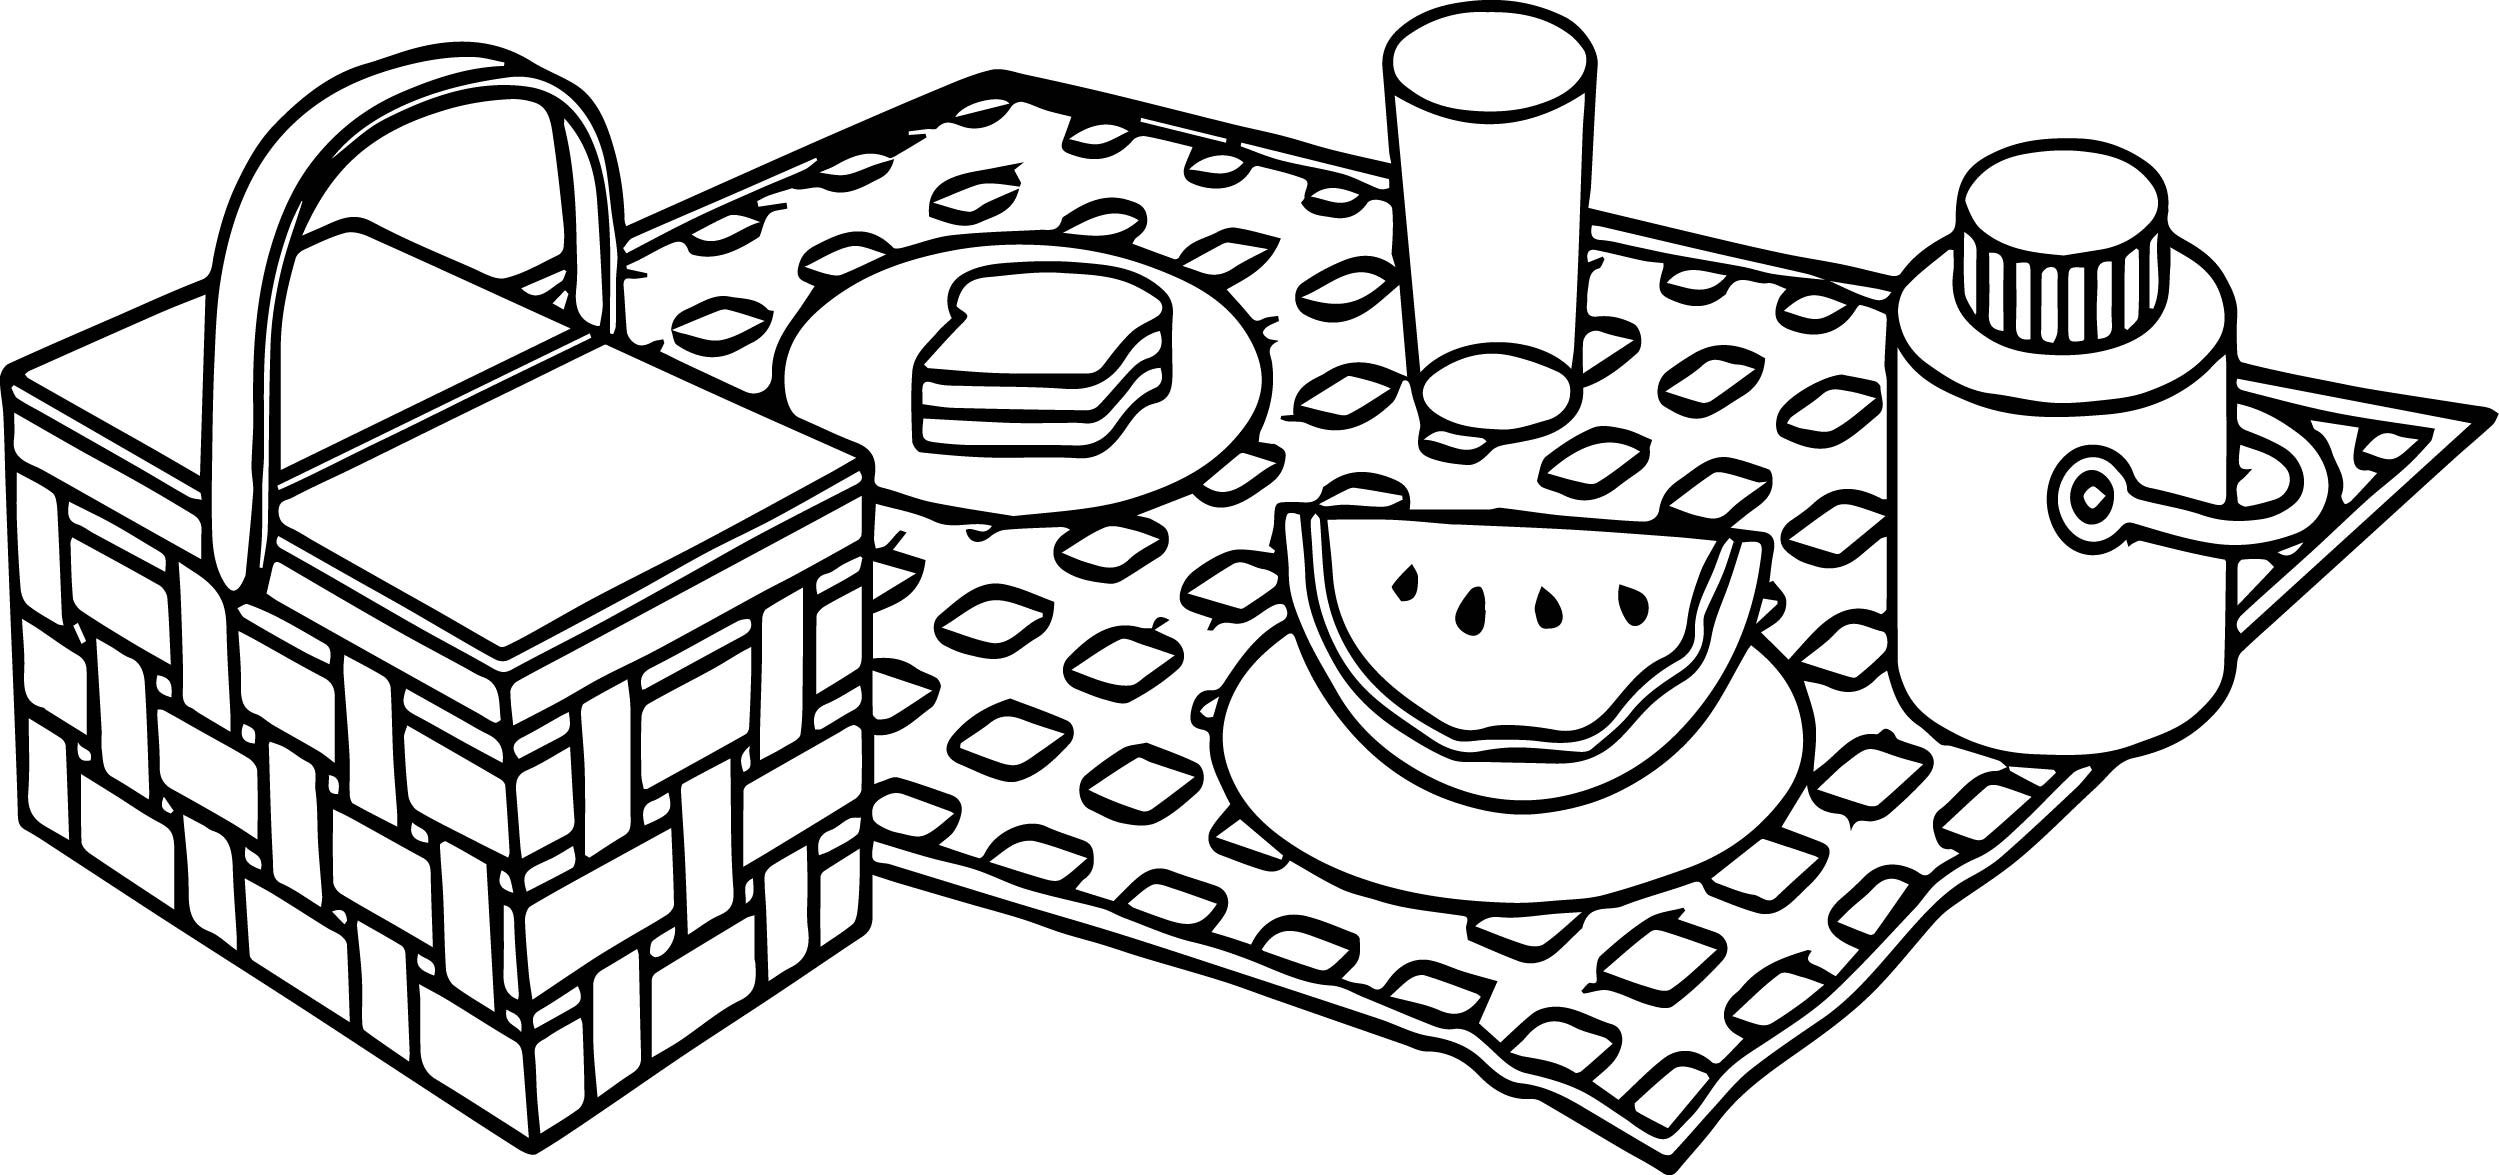 2499x1175 Picnic Coloring Pages With Table Page